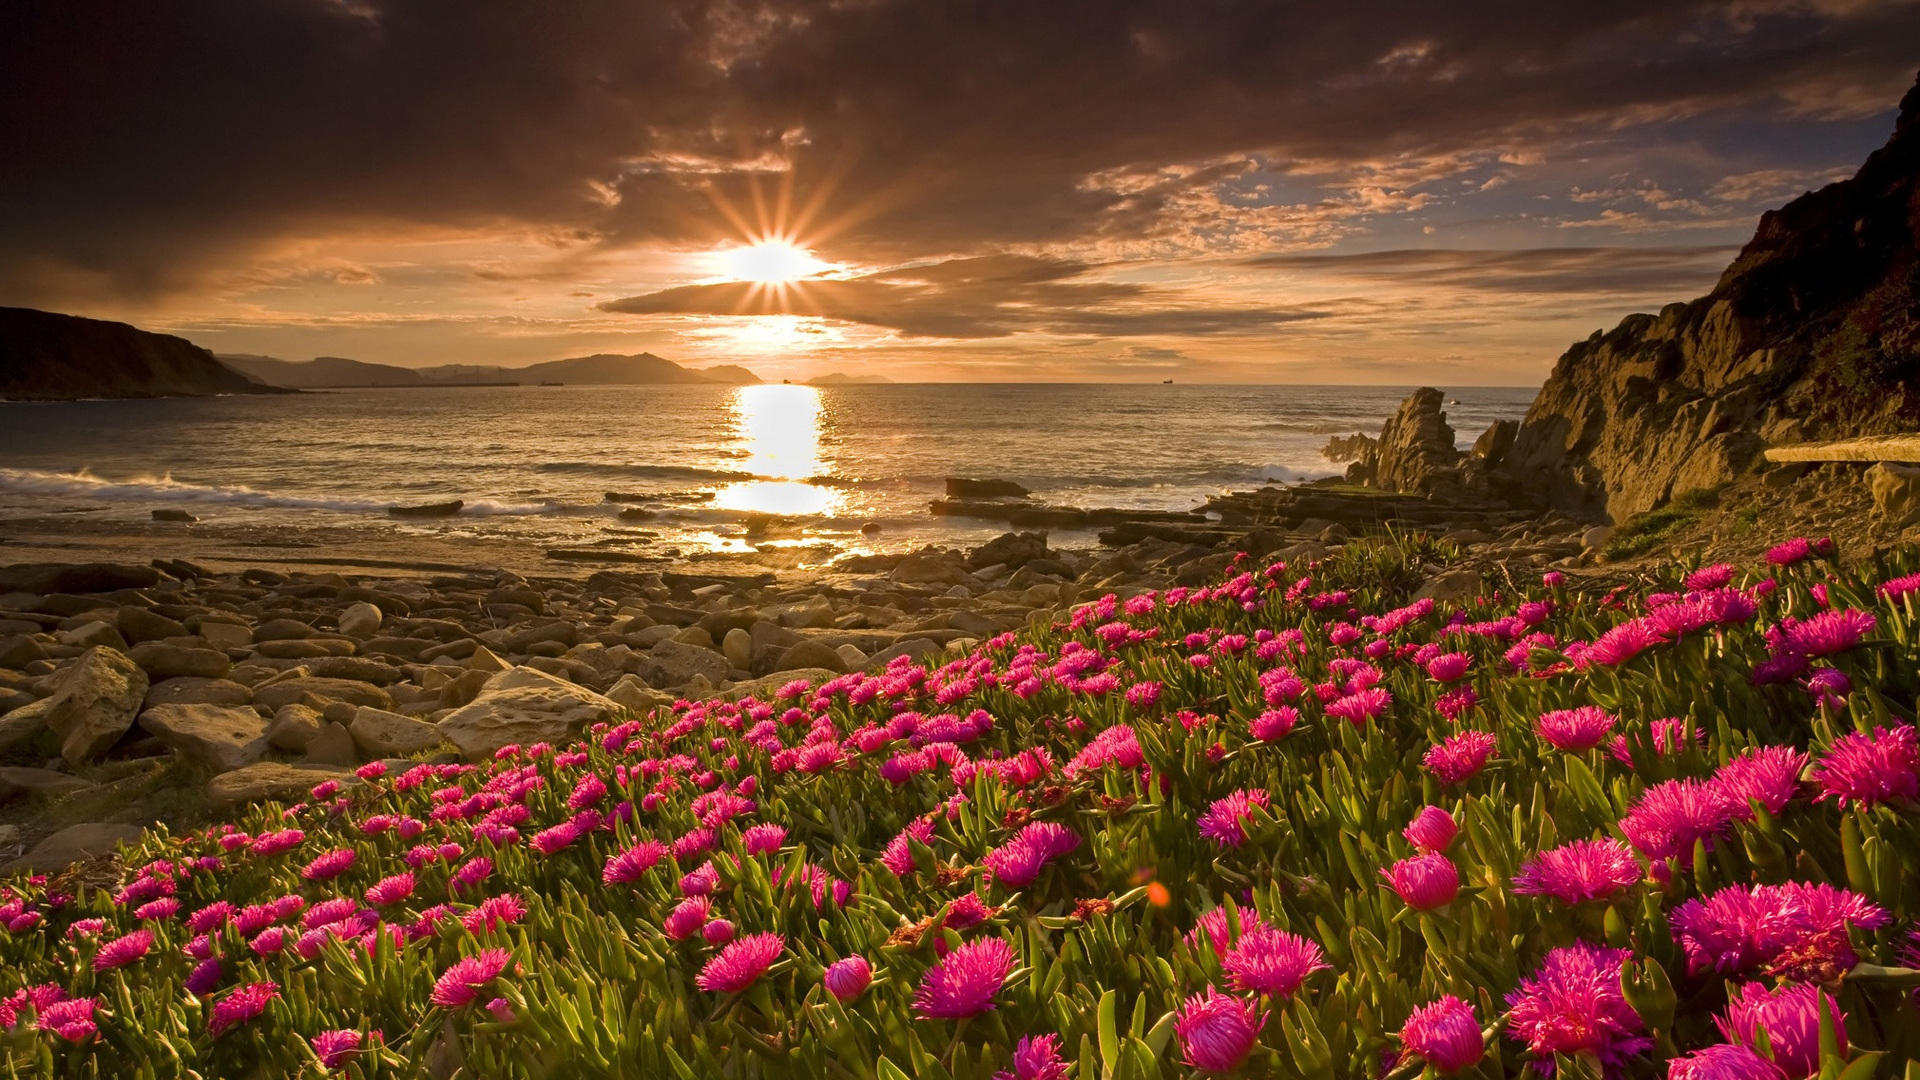 1920x1080 Flowers Amp Sunrise Desktop PC And Mac Wallpaper